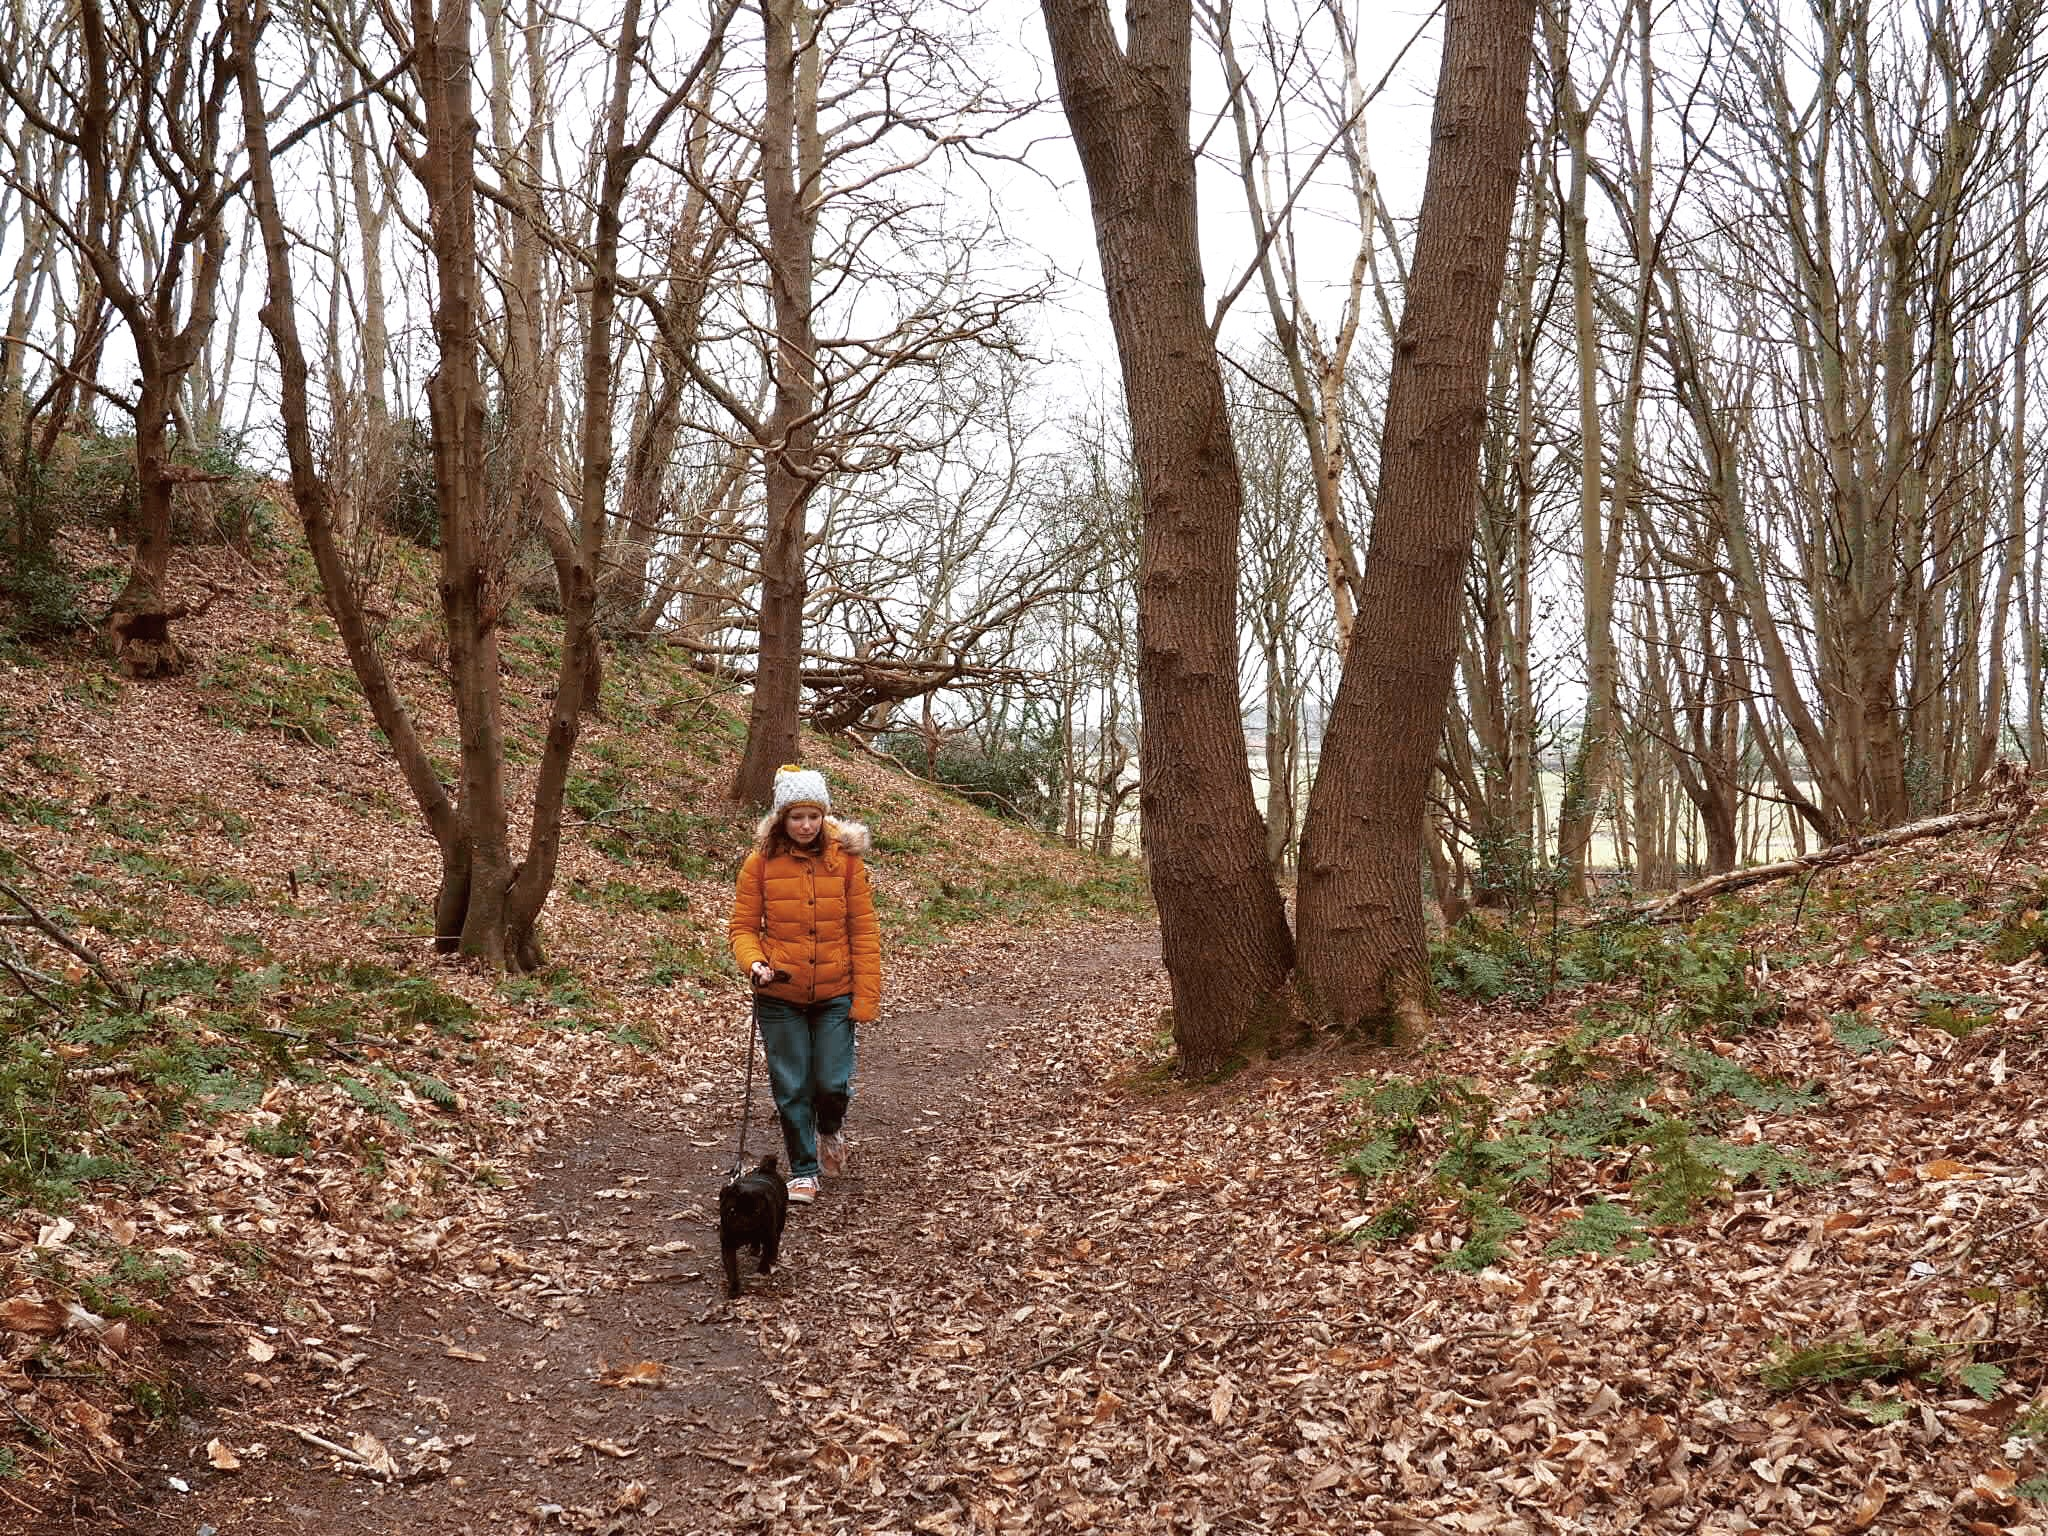 Walking up through the Hundred Acre Wood